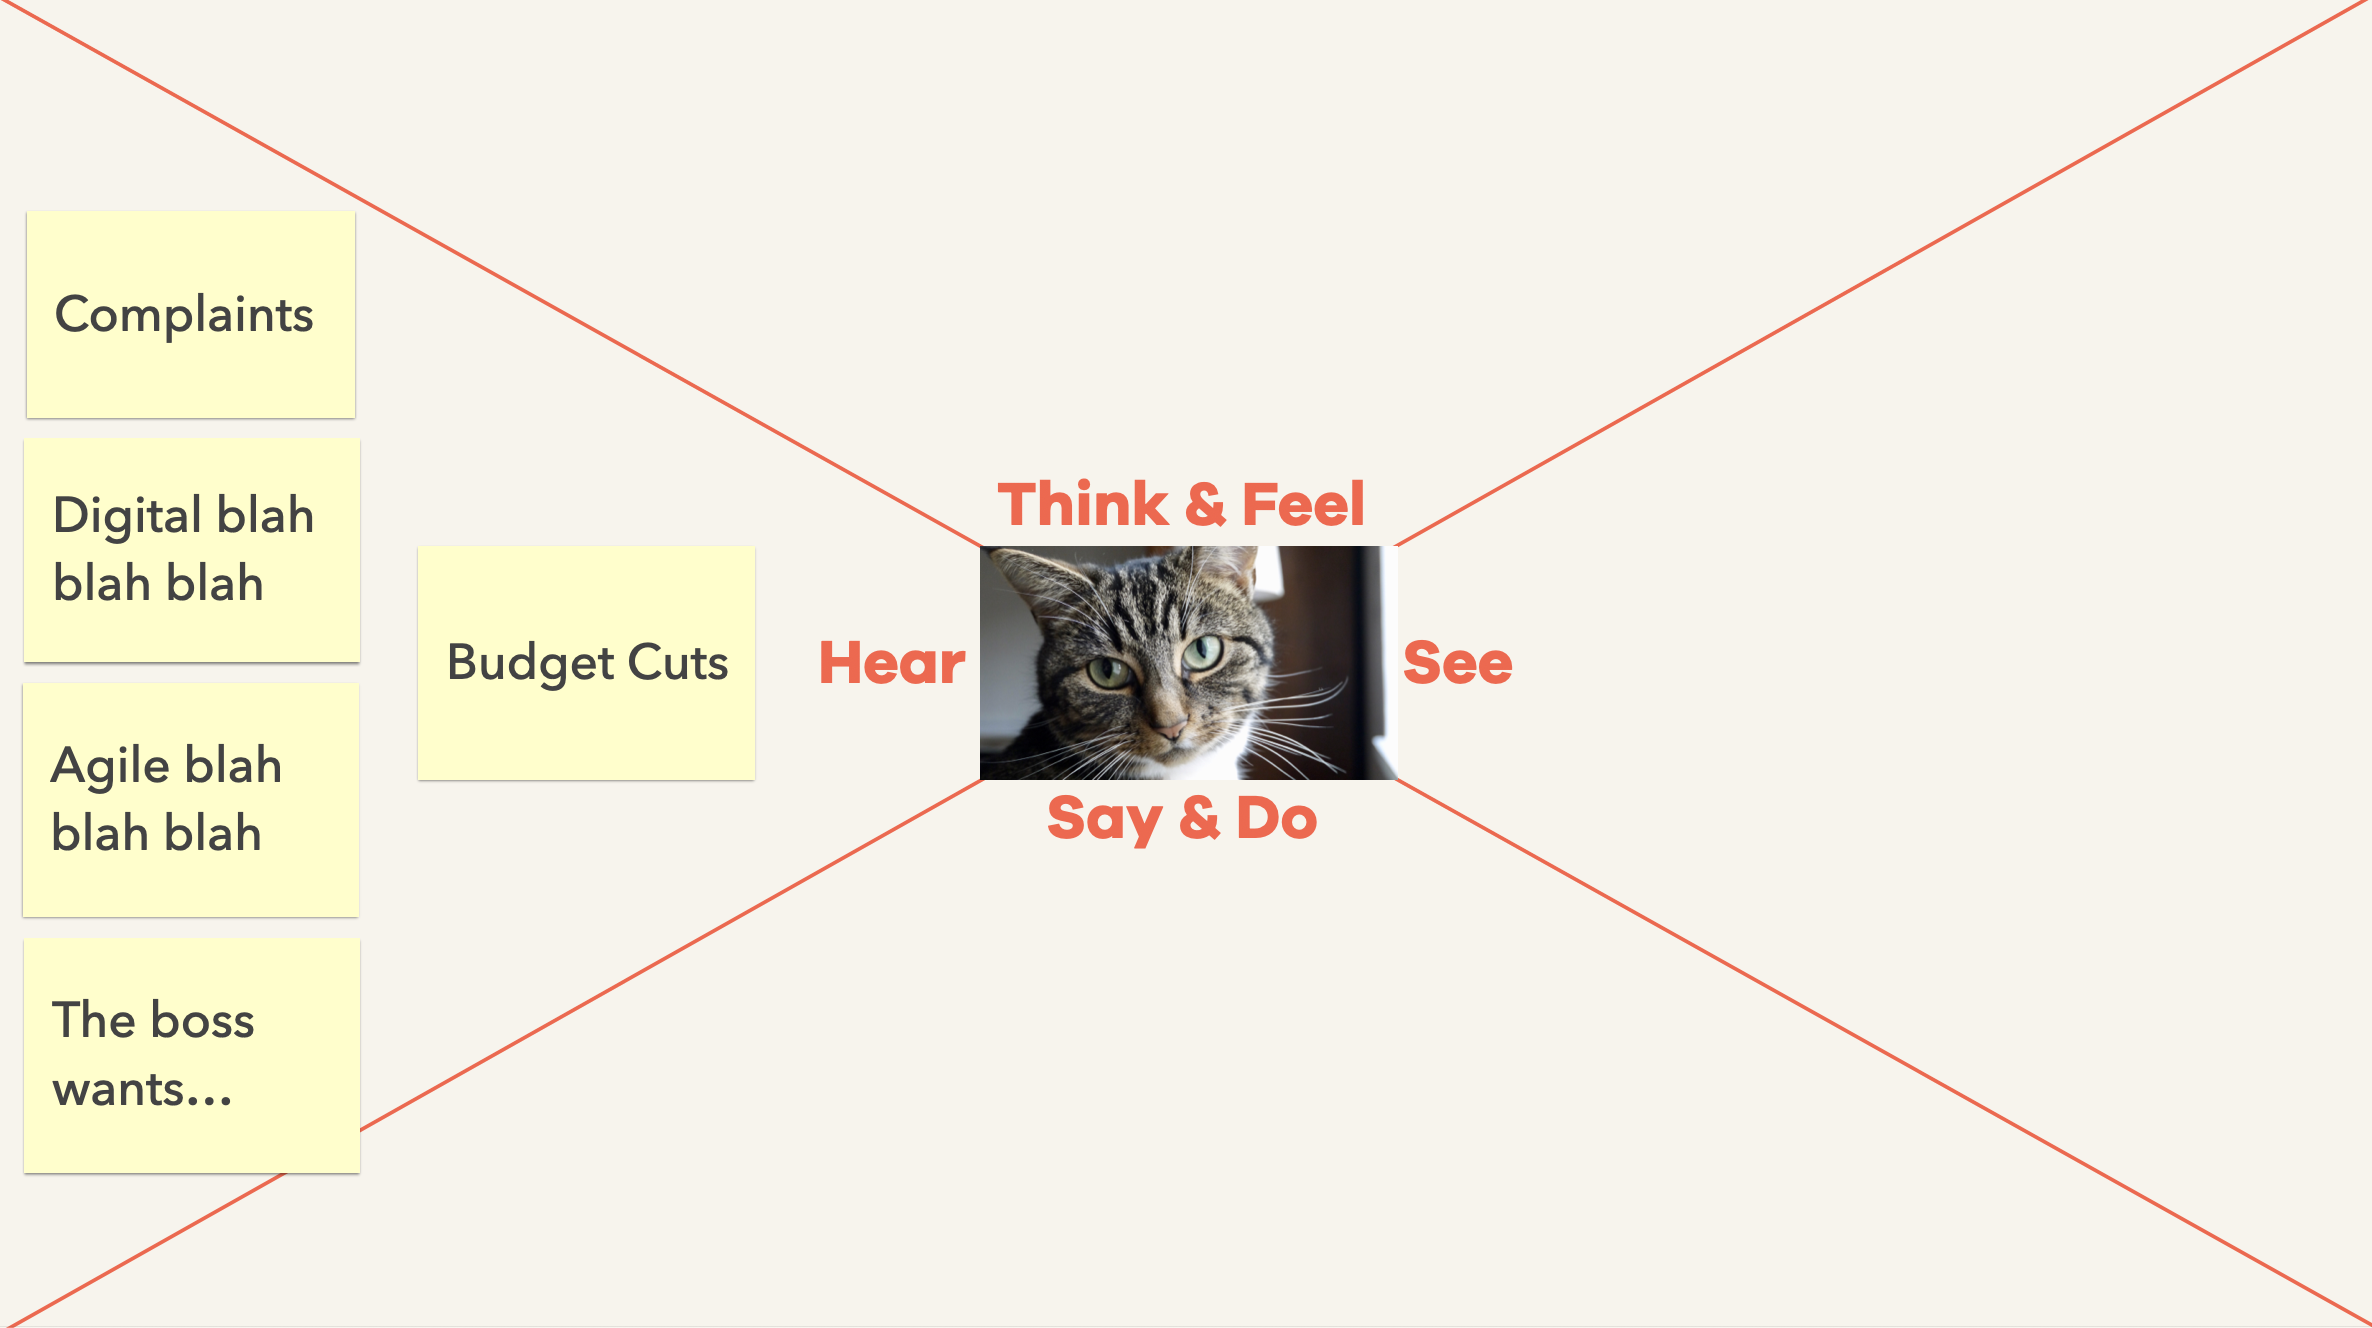 An image of a basic empathy map, showing a quadrant of sticky notes capturing what leaders report hearing. Each sticky note is described in the text below.